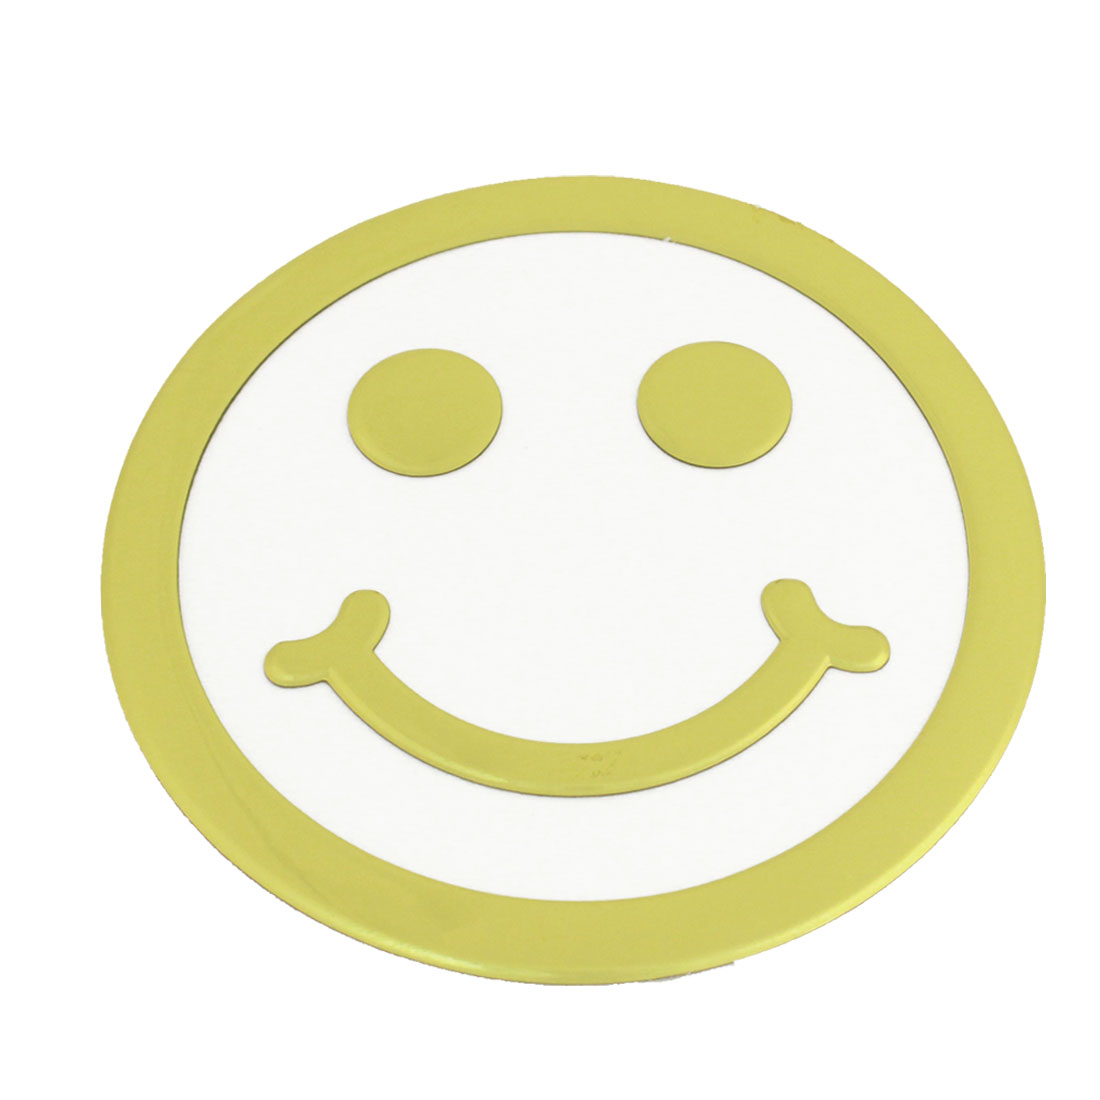 Gold Tone Smile Face Shaped 3D Sticker Decal Ornament for Vehicle Car